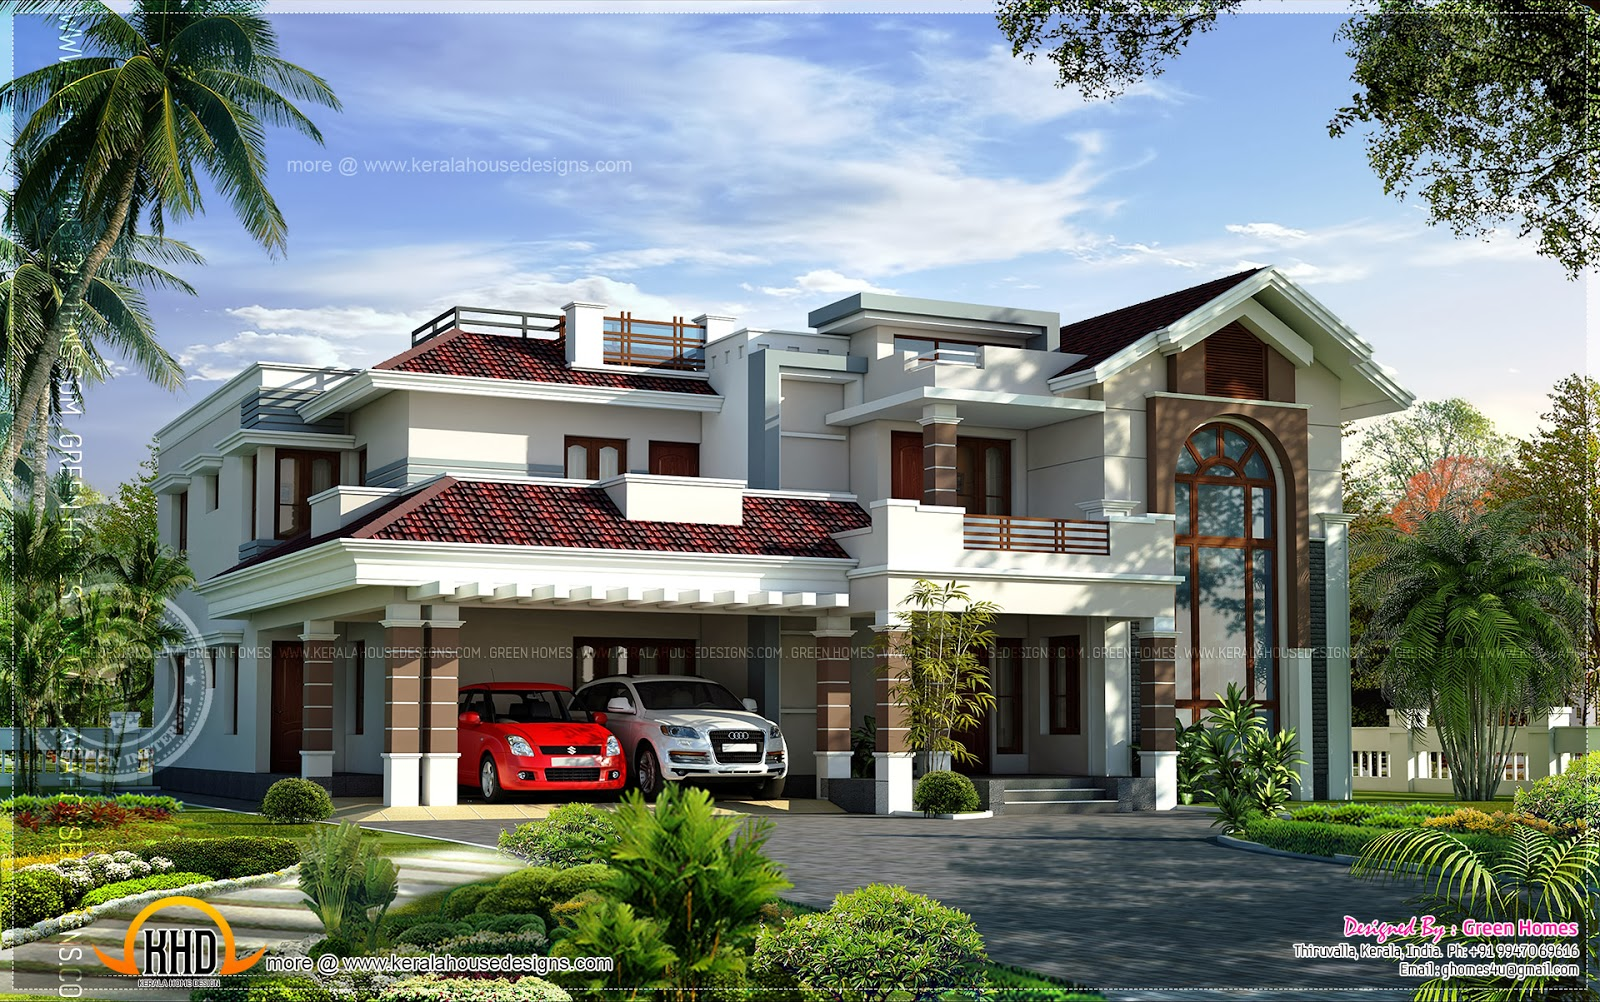 Simple Exterior House Designs In Kerala december 2013 - kerala home design and floor plans